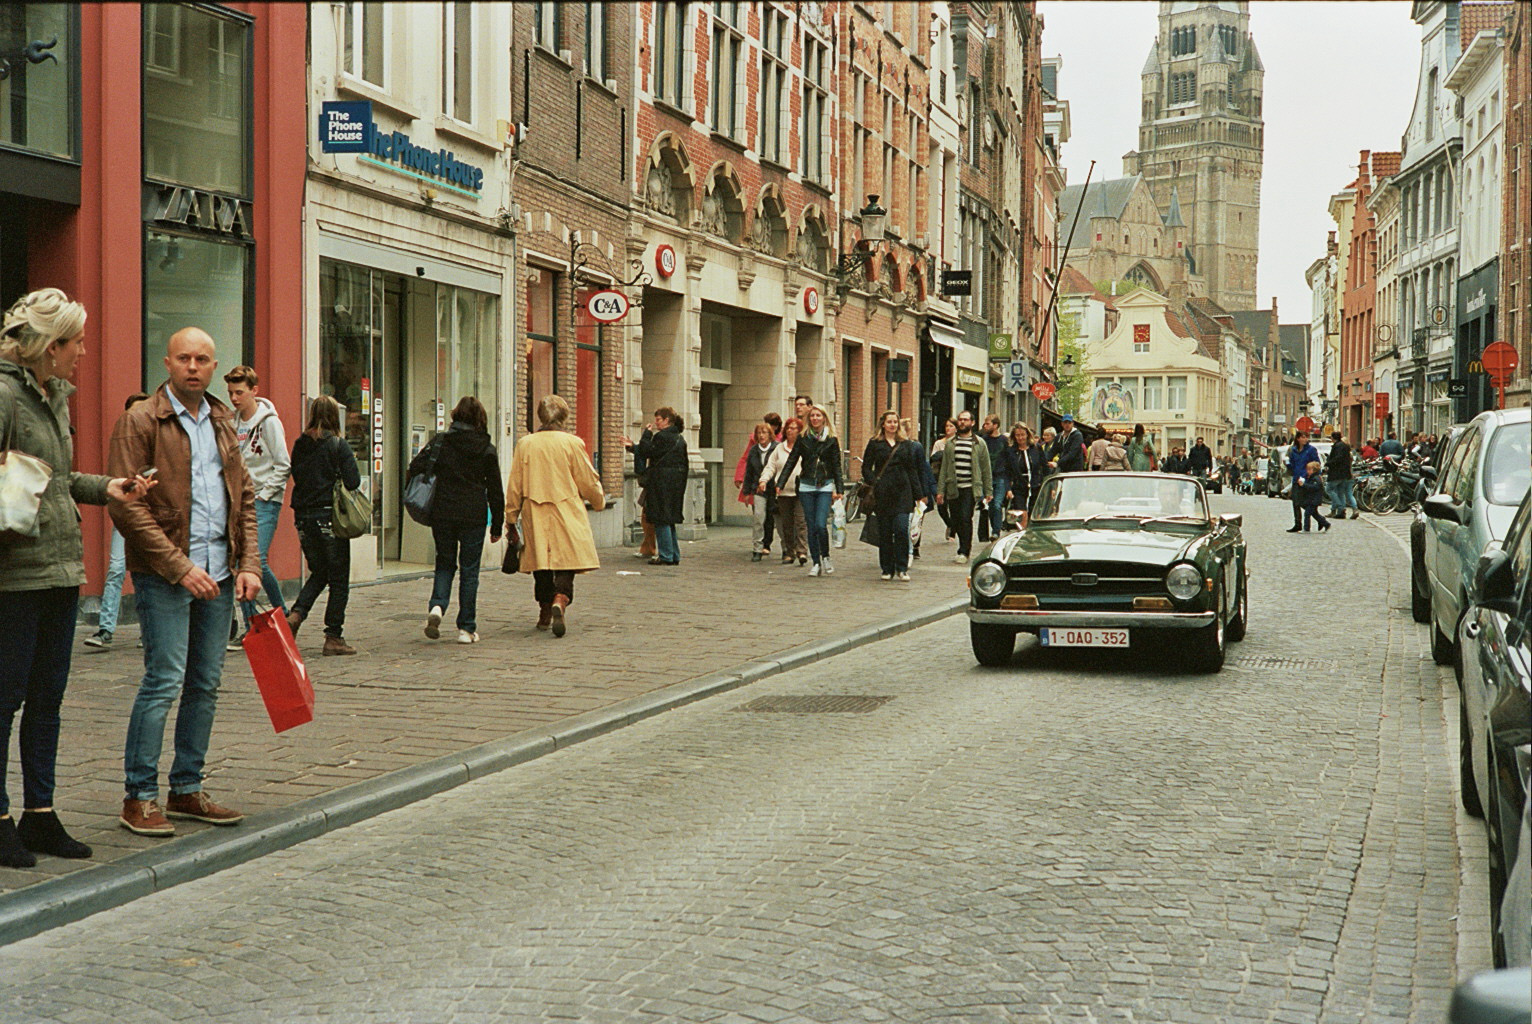 Private passenger cars hardly enter old towns. In Brugge old-timers fit the scene